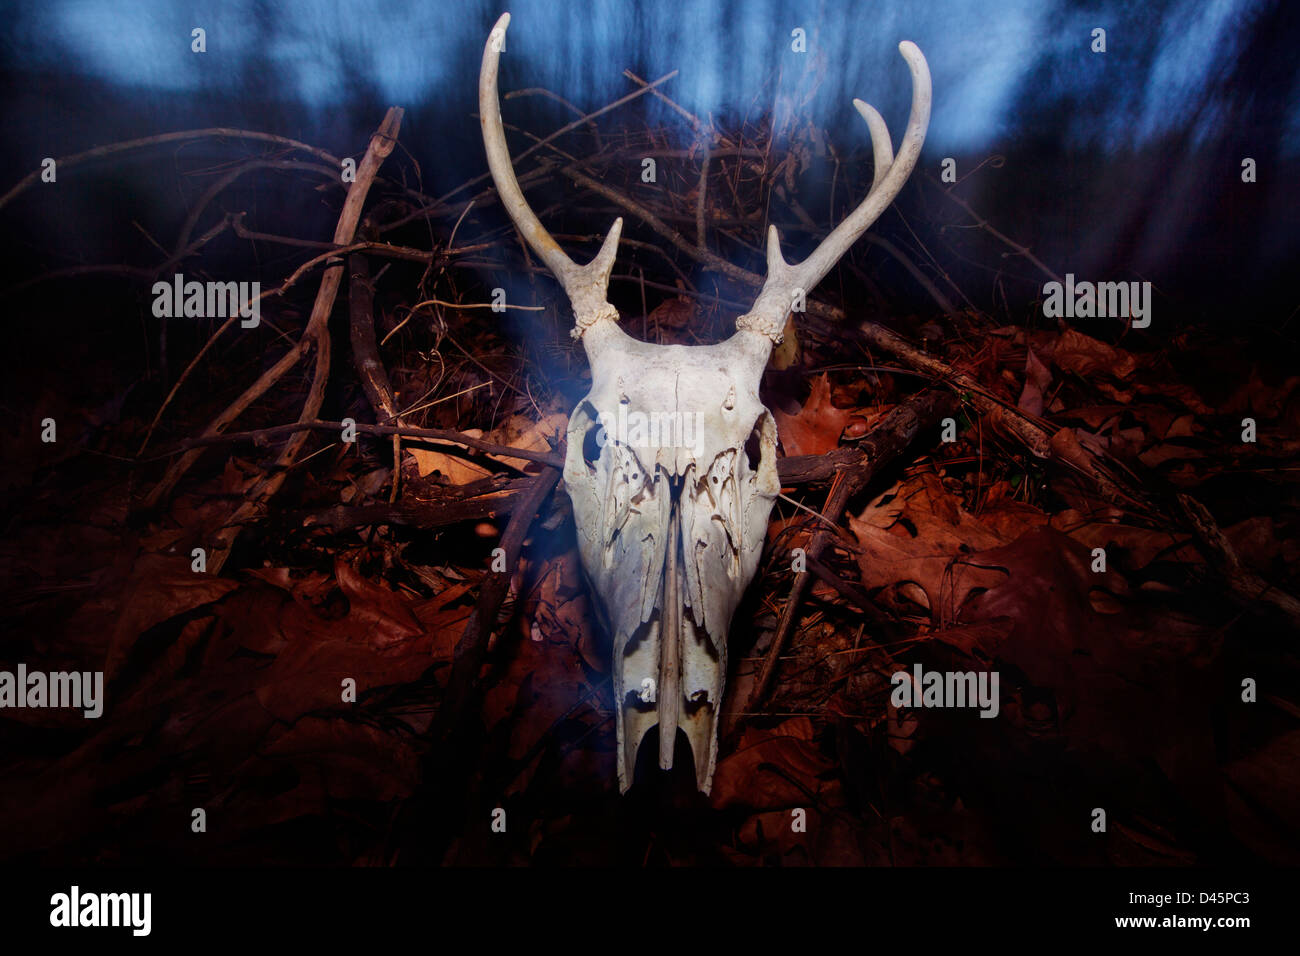 A deer skull in a forest at dusk. - Stock Image